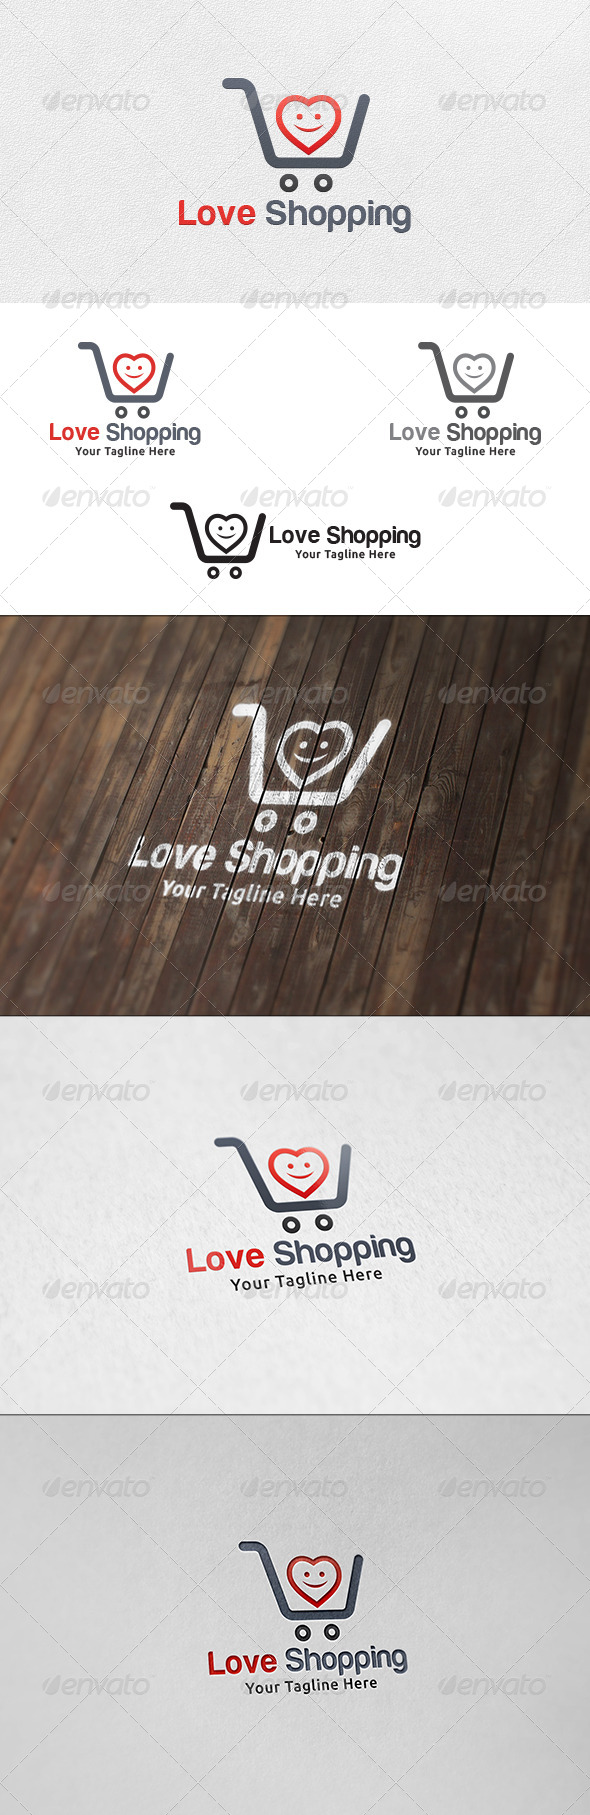 GraphicRiver Love Shopping Logo Template 7075520